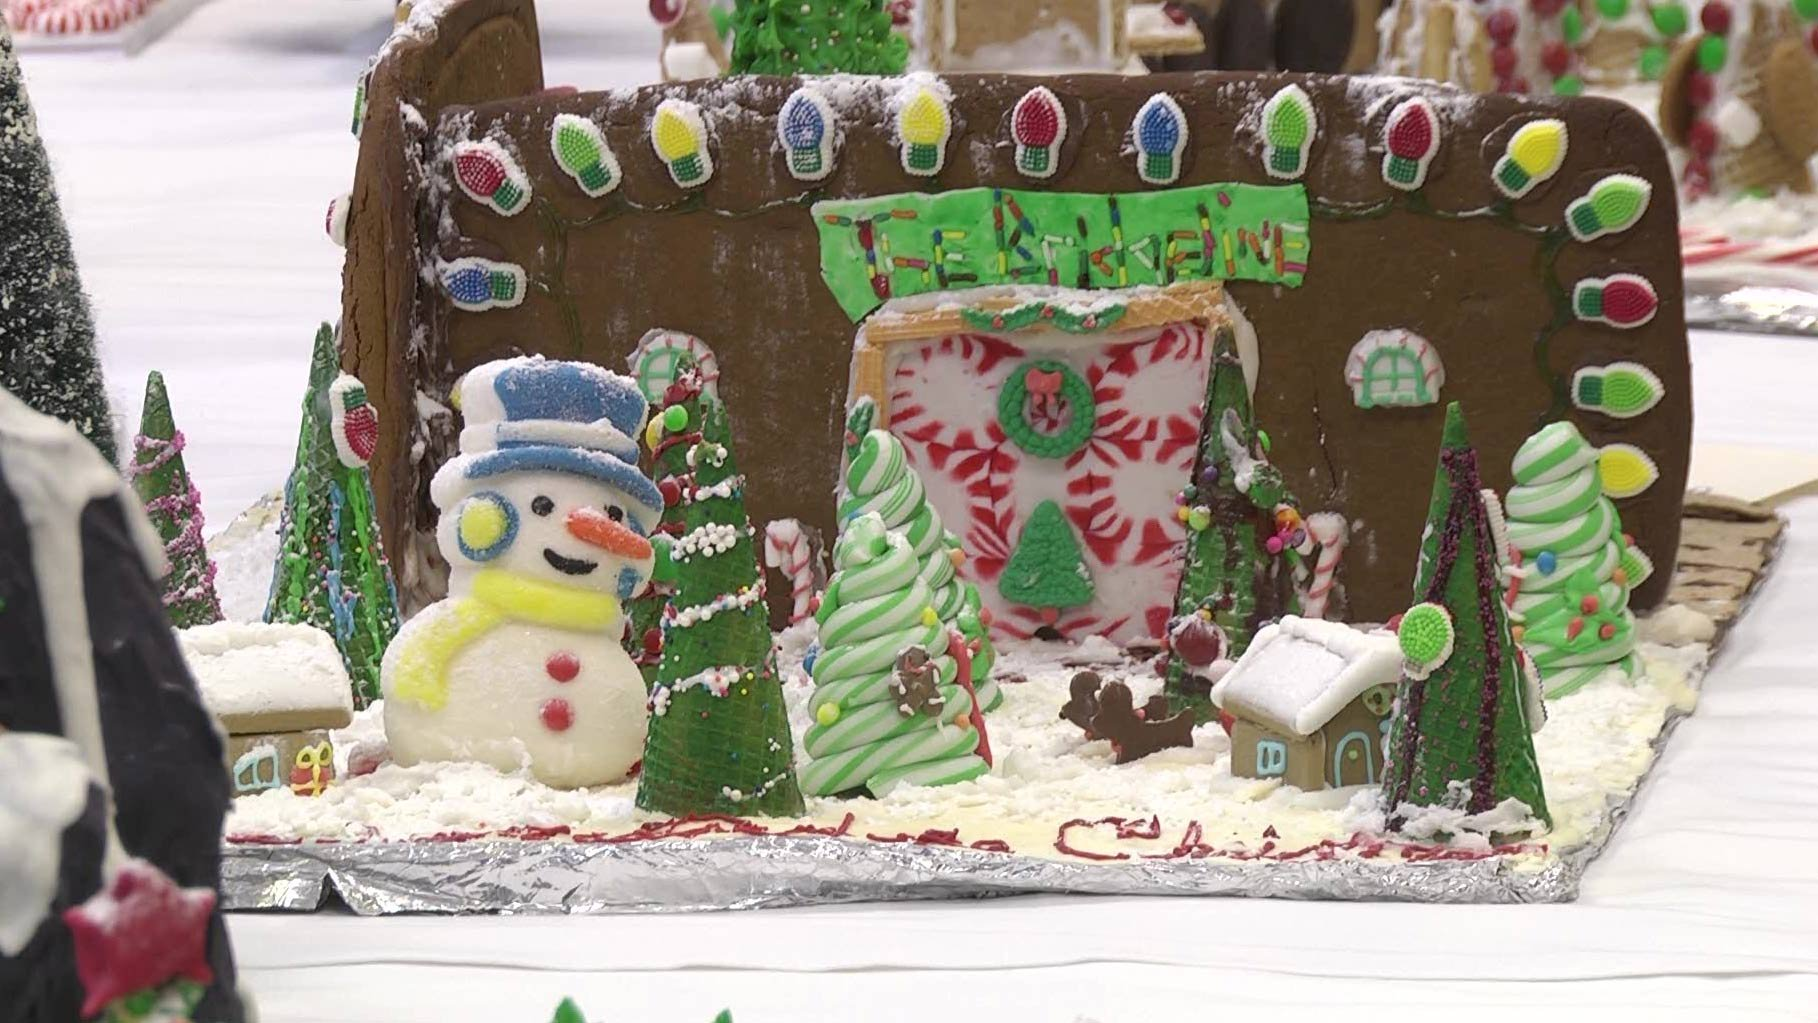 One of the many gingerbread houses entered in the contest.